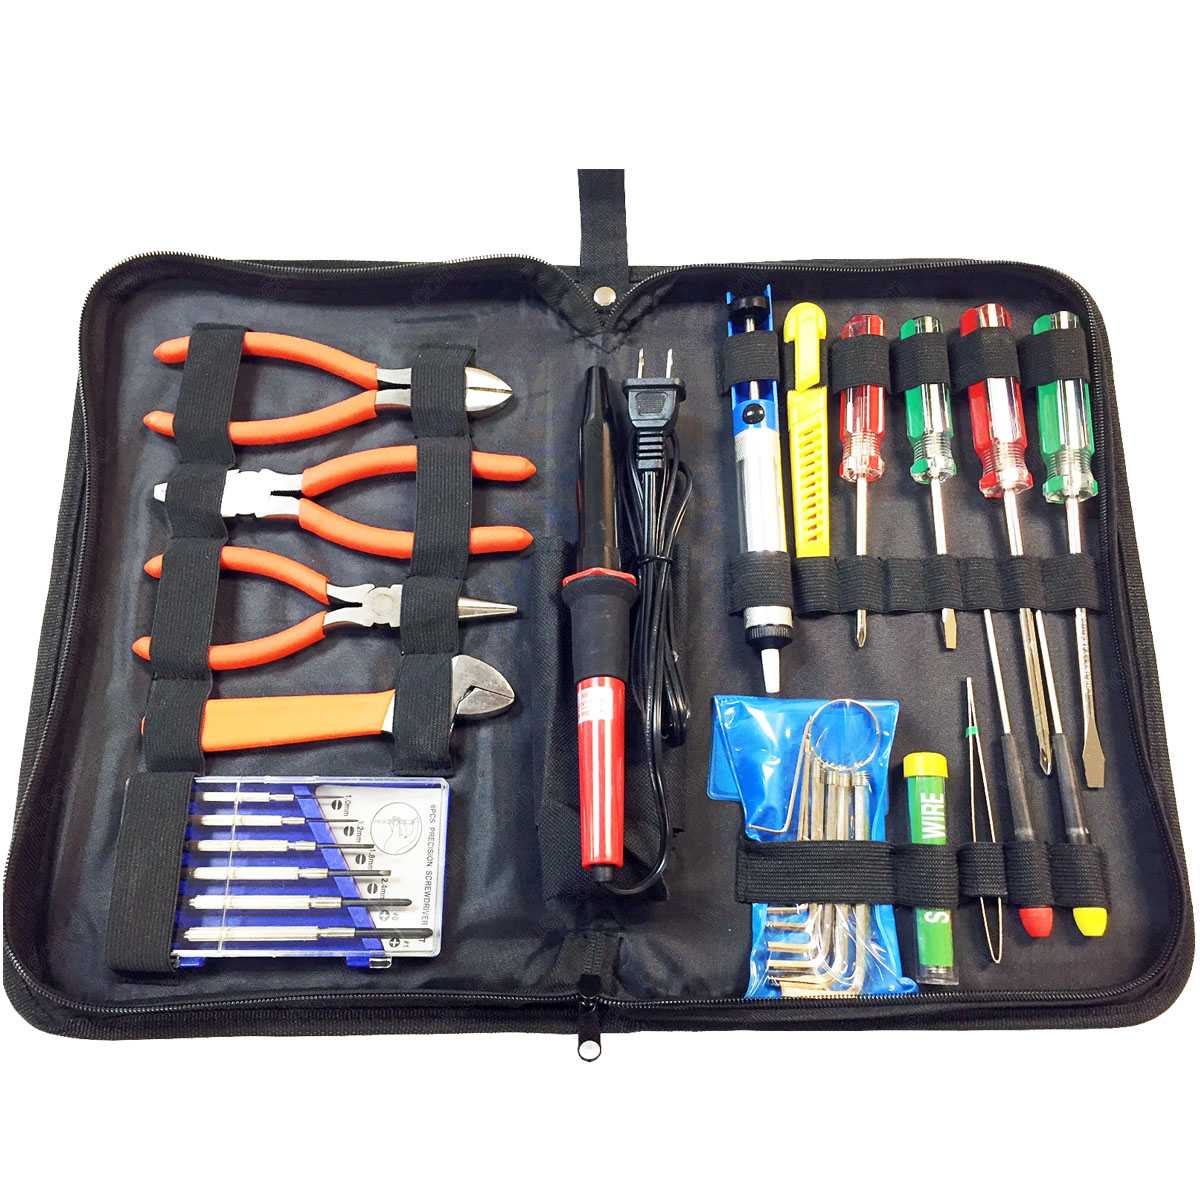 Electronic Master Tool Kits Soldering Irons